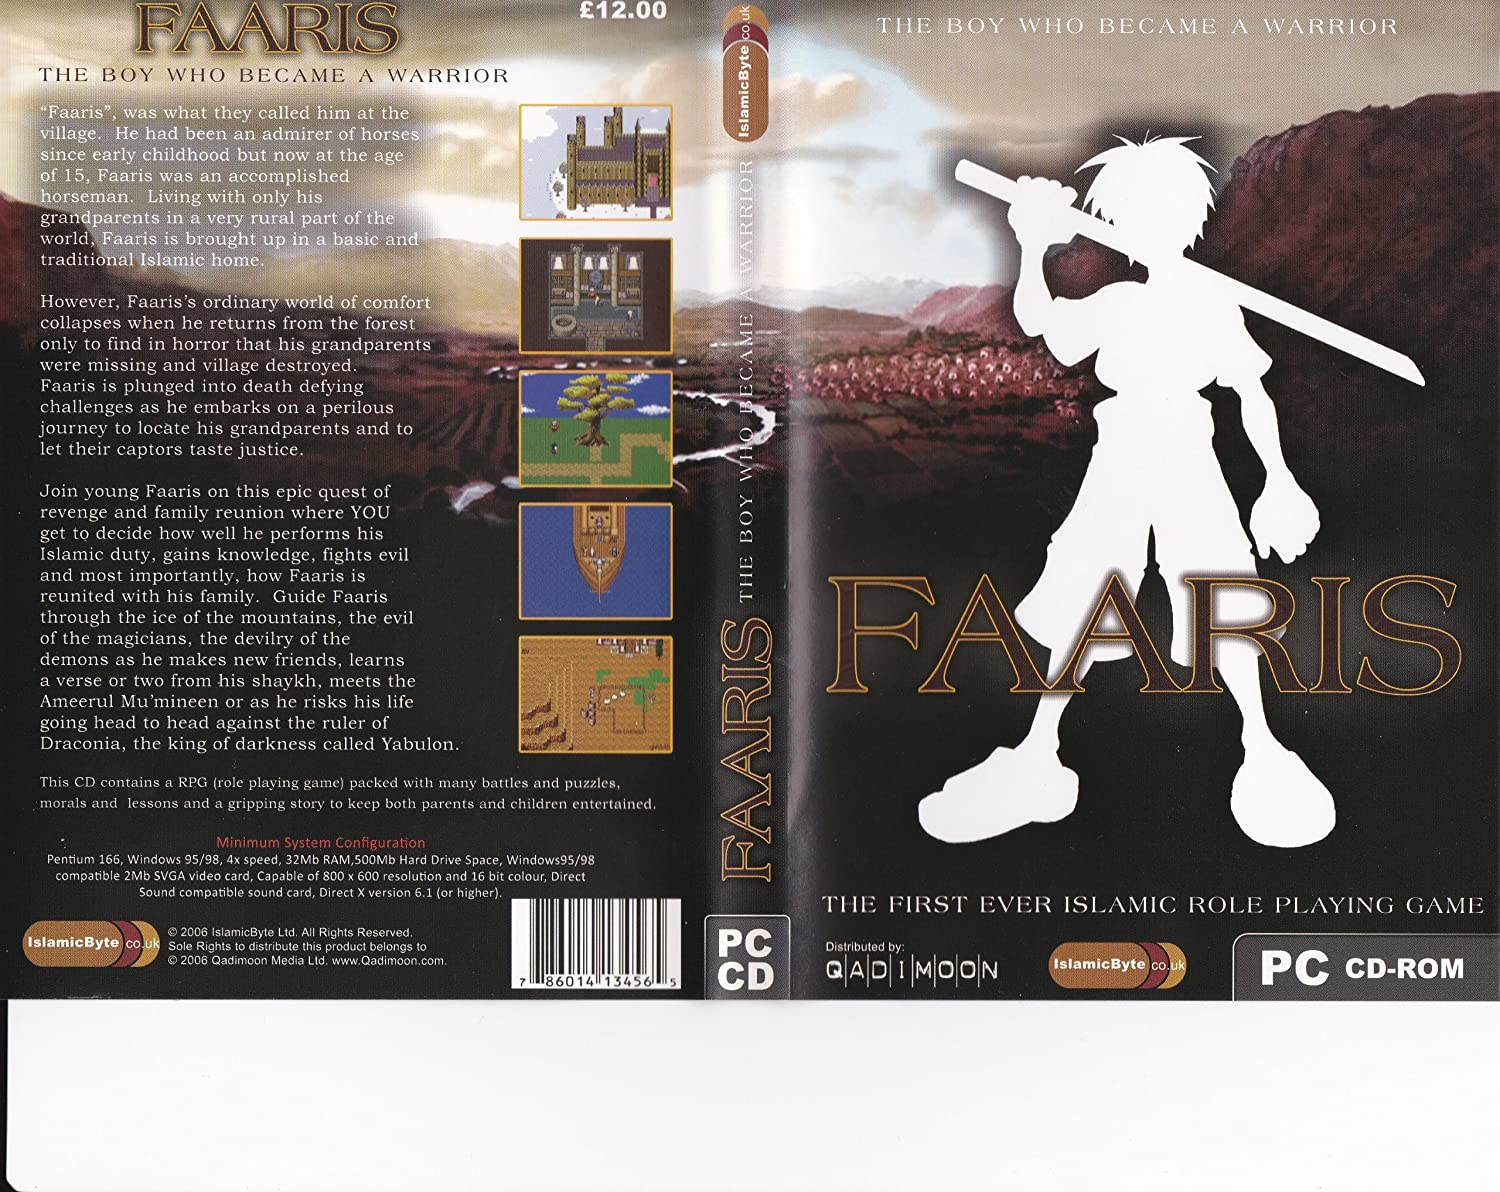 Faaris - The Boy who became a Warrior [CD-ROM]: Amazon co uk